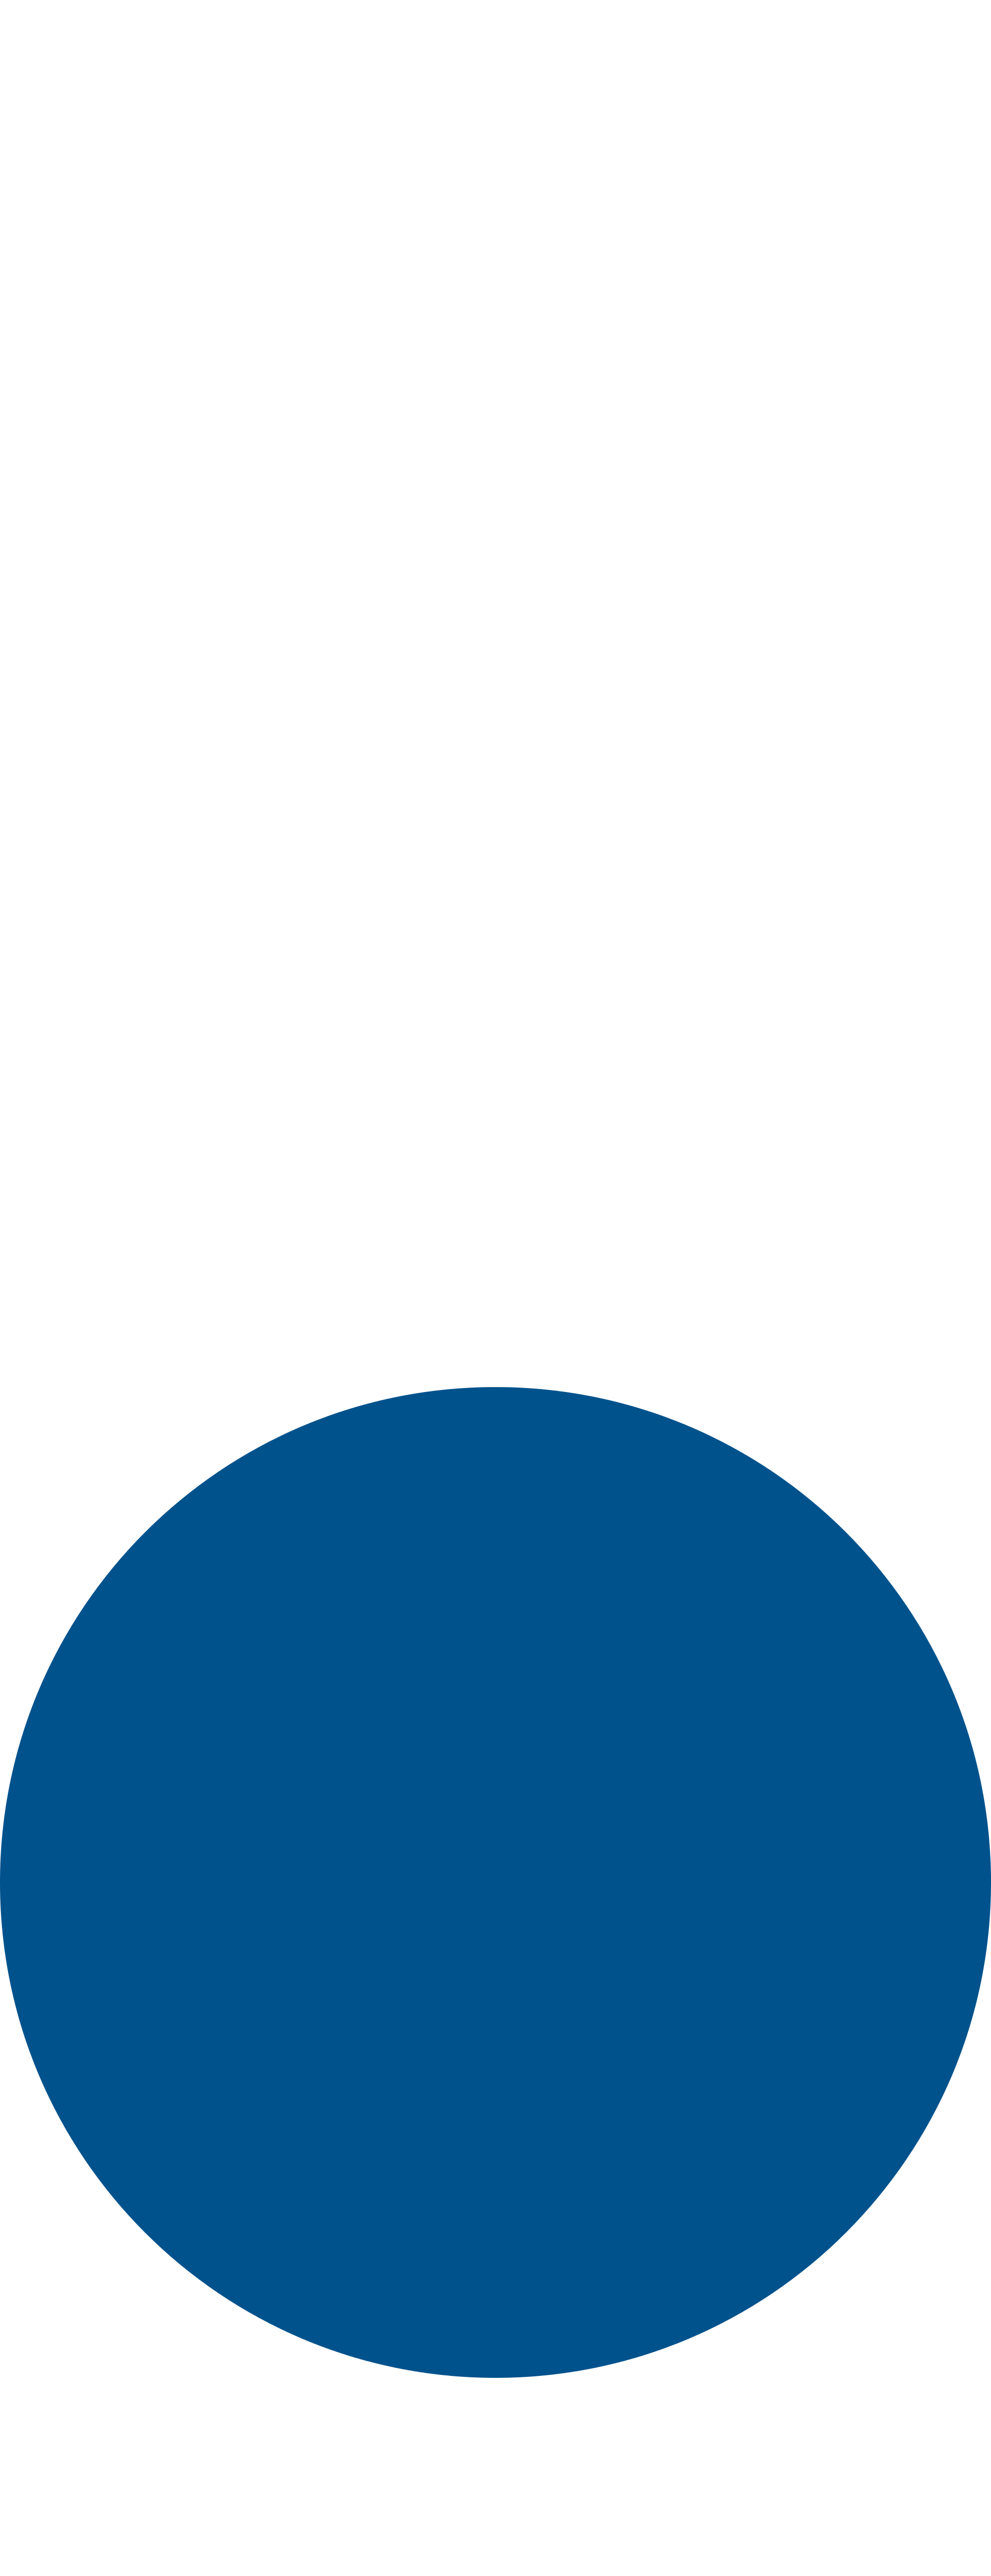 Blue Bullets Icon Png.